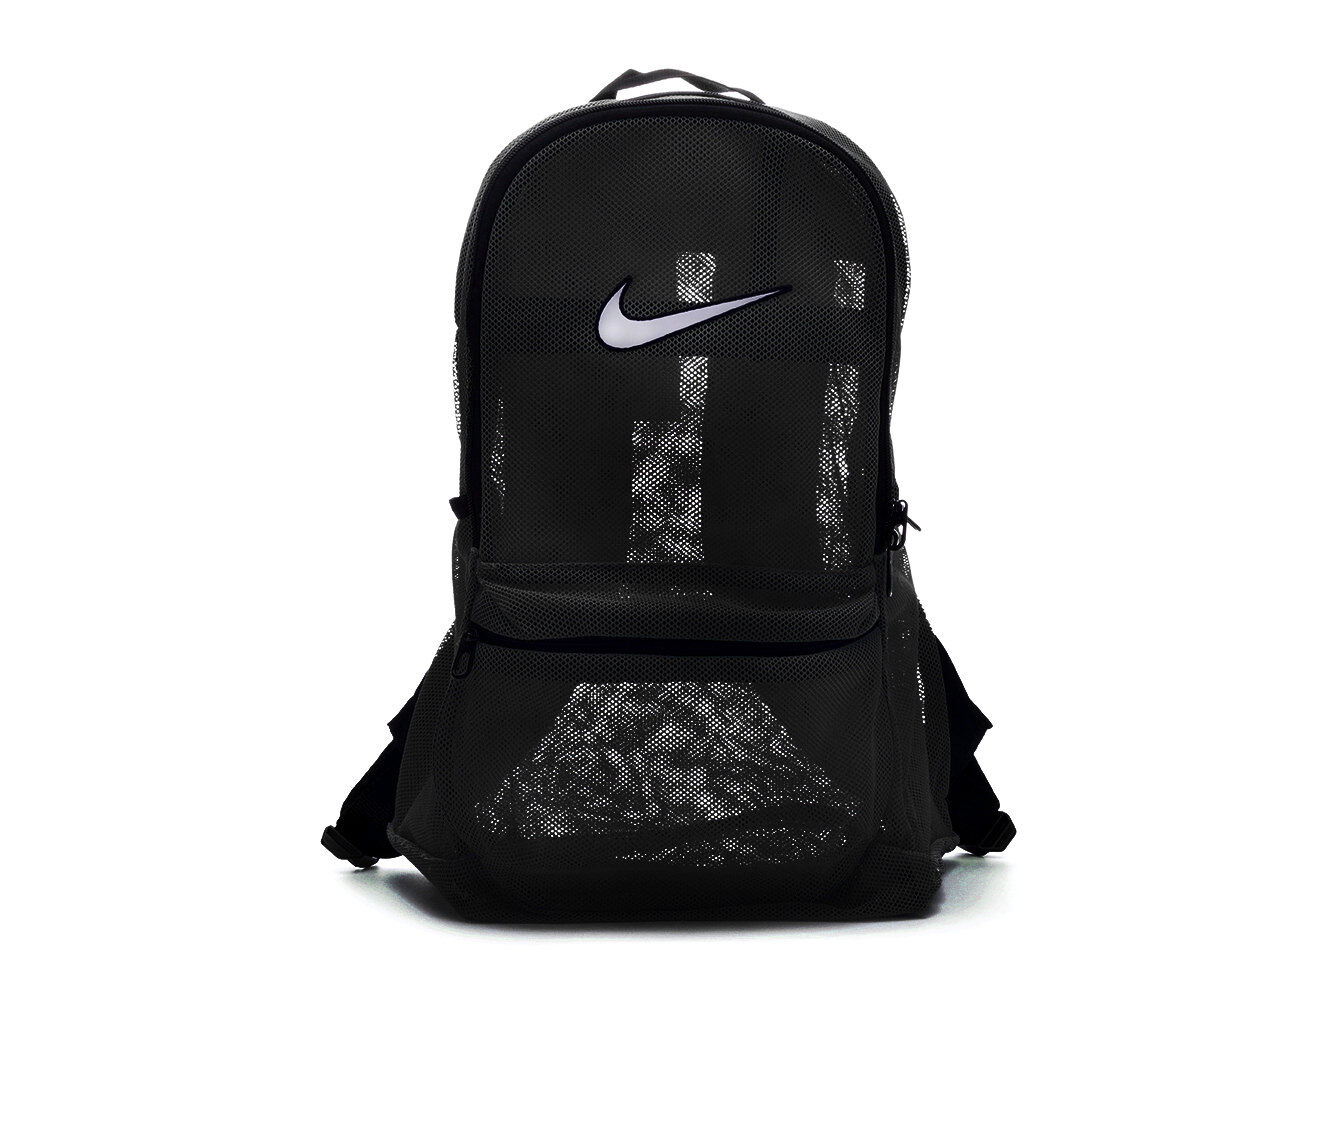 50fbe4b6da68 nike sling bag price cheap   OFF57% The Largest Catalog Discounts